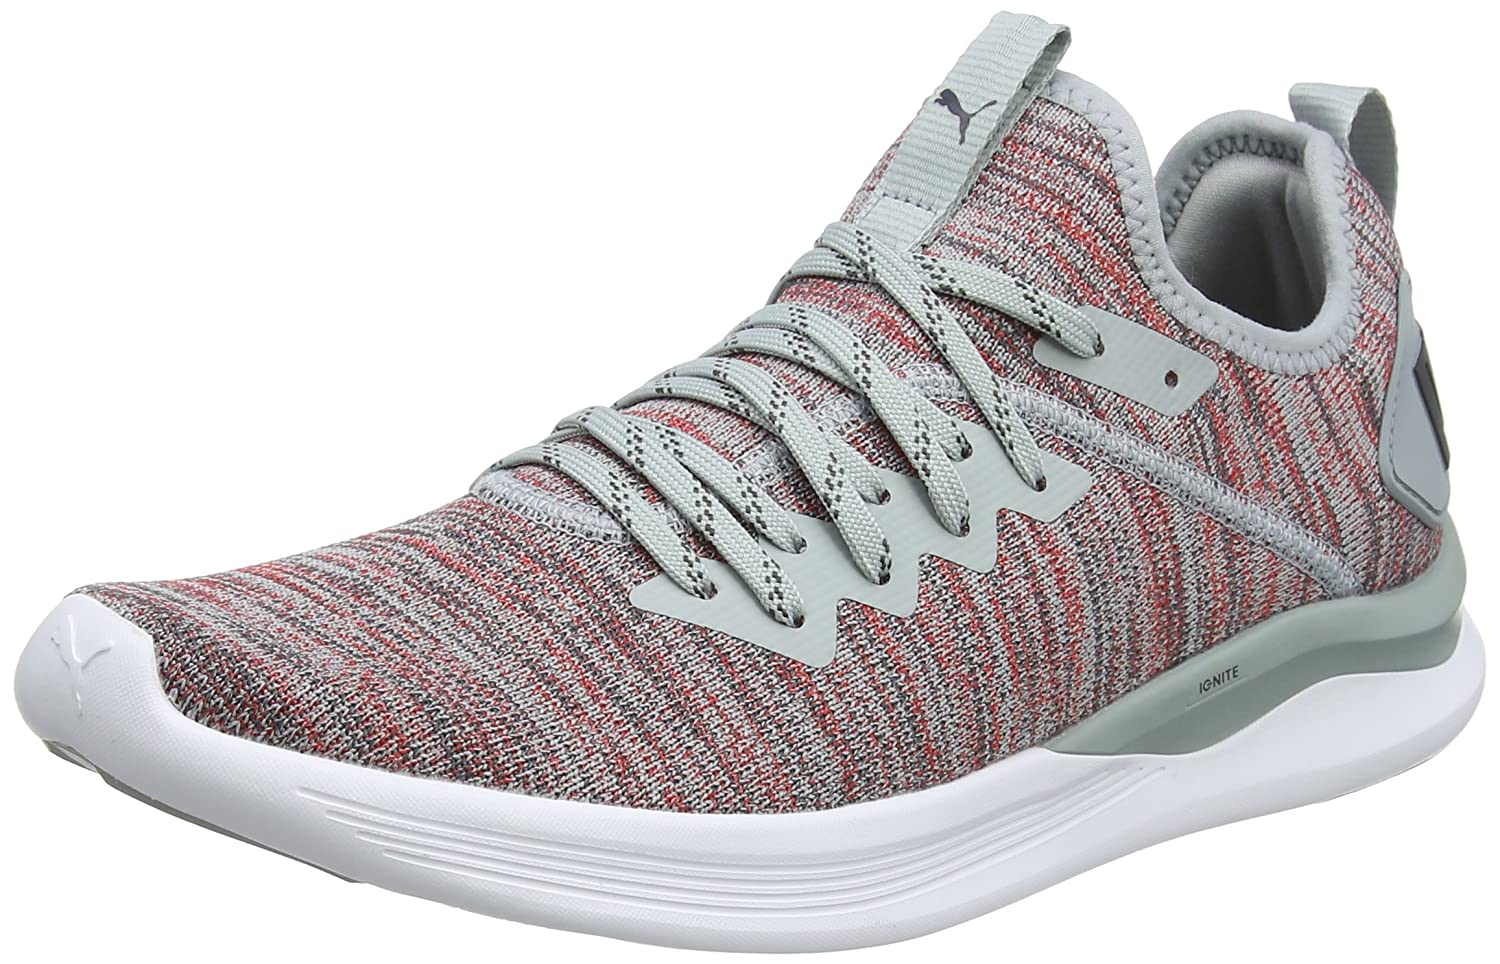 Puma Ignite Flash Evoknit, Scarpe Sportive Outdoor Uomo Grigio (Quarry-high Risk rosso-asphalt) | Consegna Immediata